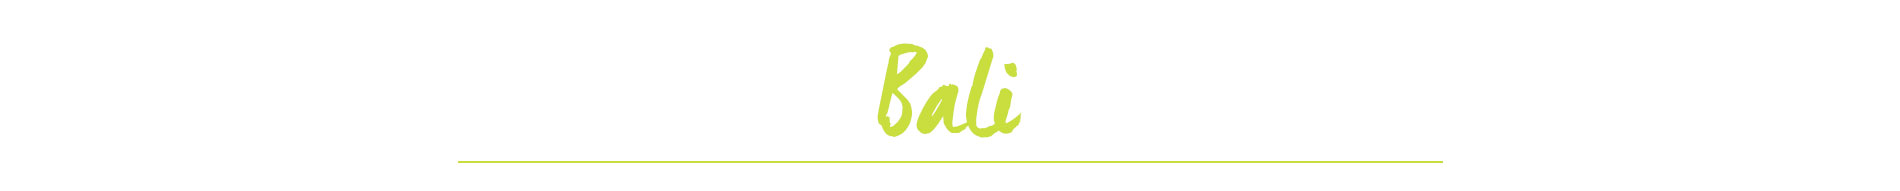 Travel_IT_Restaurants_bnr_Bali